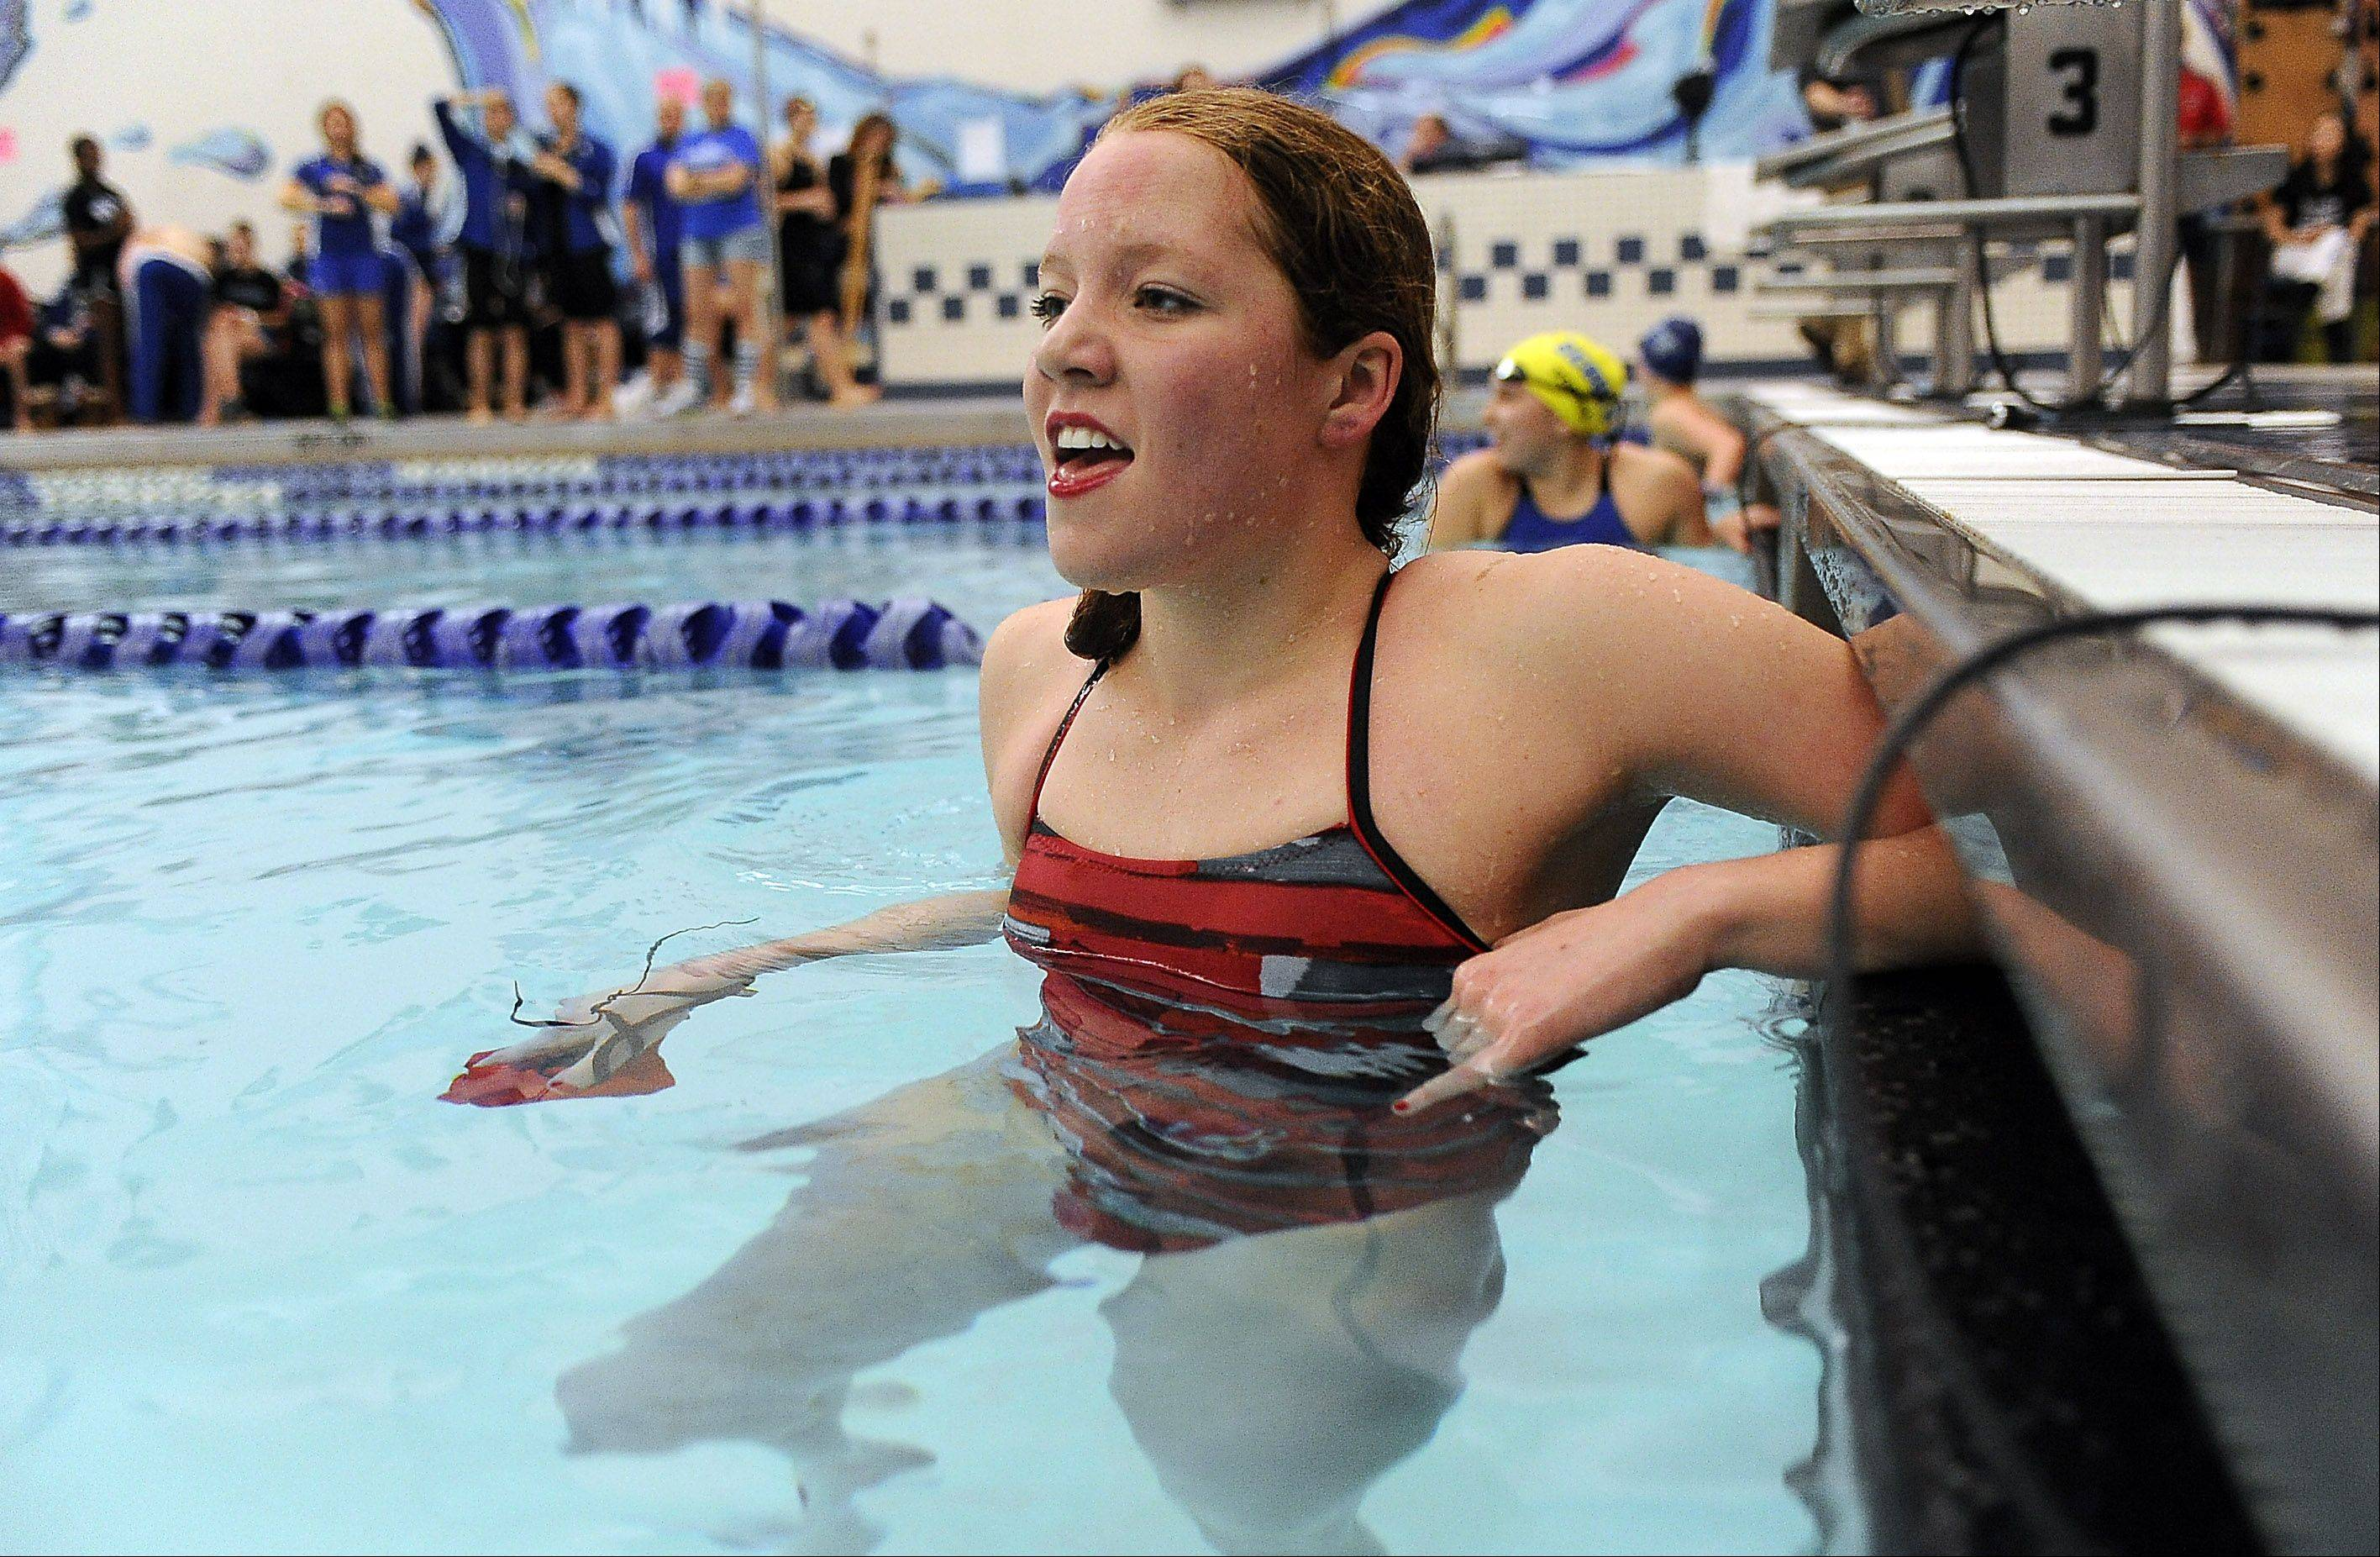 Mundelein's Erin Falconer is all smiles after winning the girls 200-yard freestyle in sectional swimming at Vernon Hills High School on Saturday.